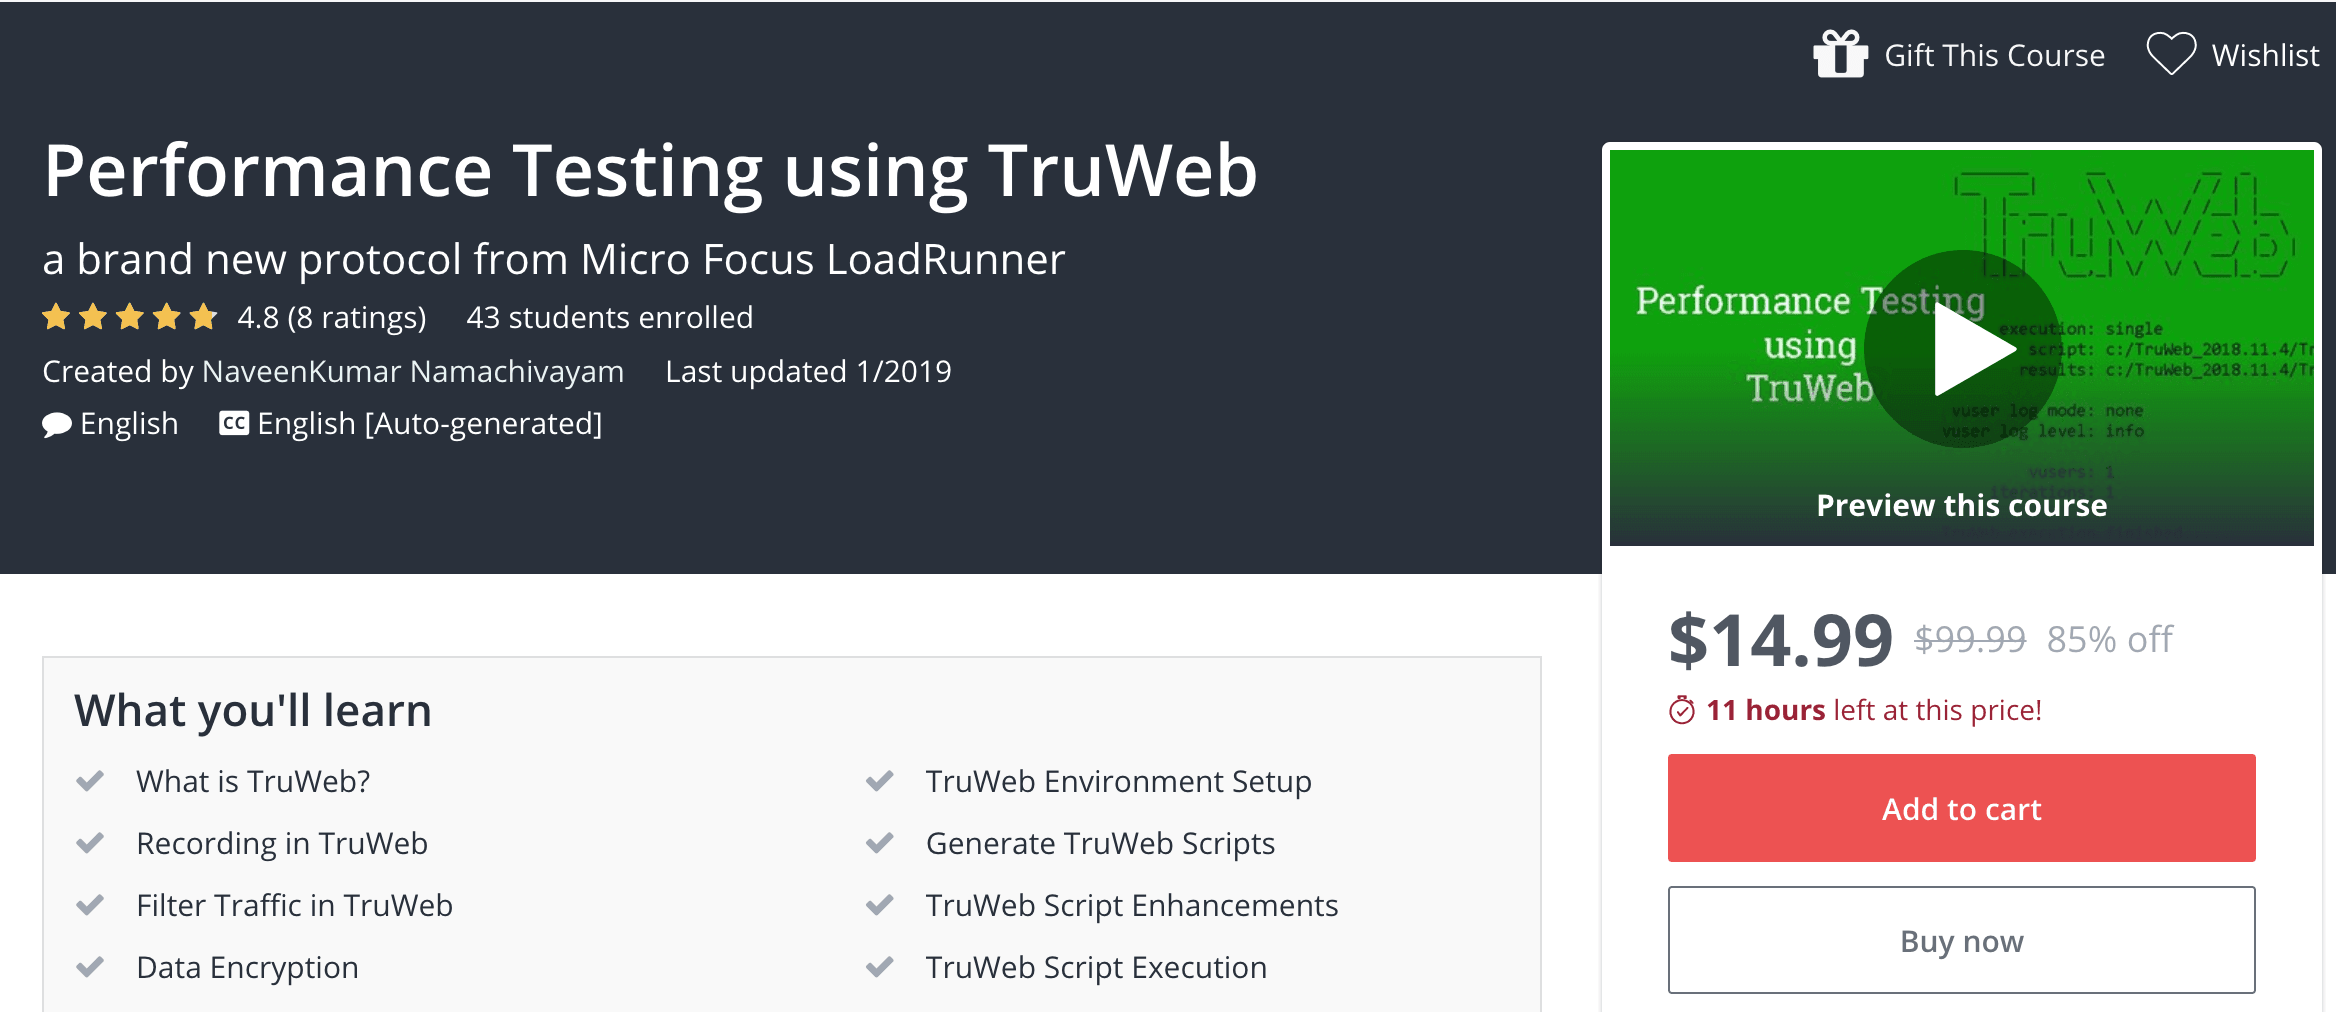 Performance Testing using TruWeb